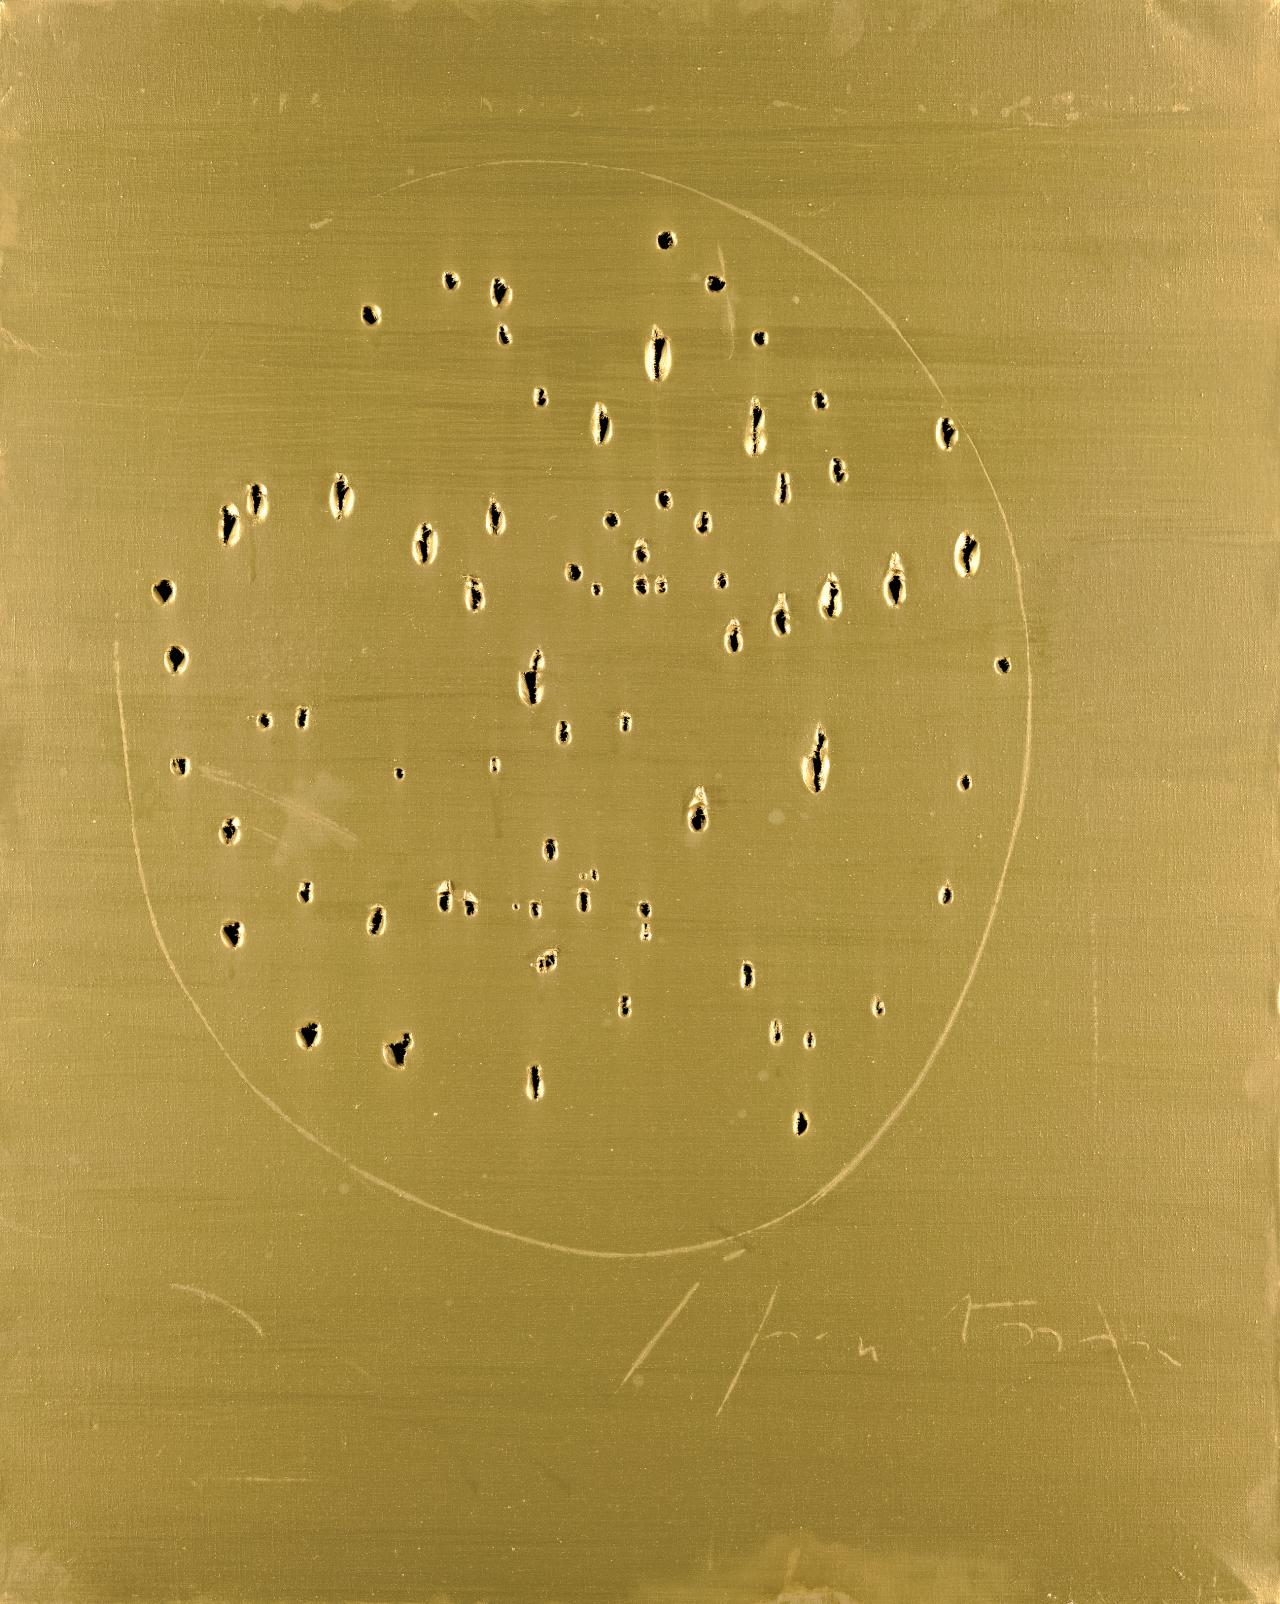 no form can be spatial the origins of lucio fontana s spatial in many respects this work conforms to the standard definition of painting consisting of a length of canvas covered in gold paint and fastened to a